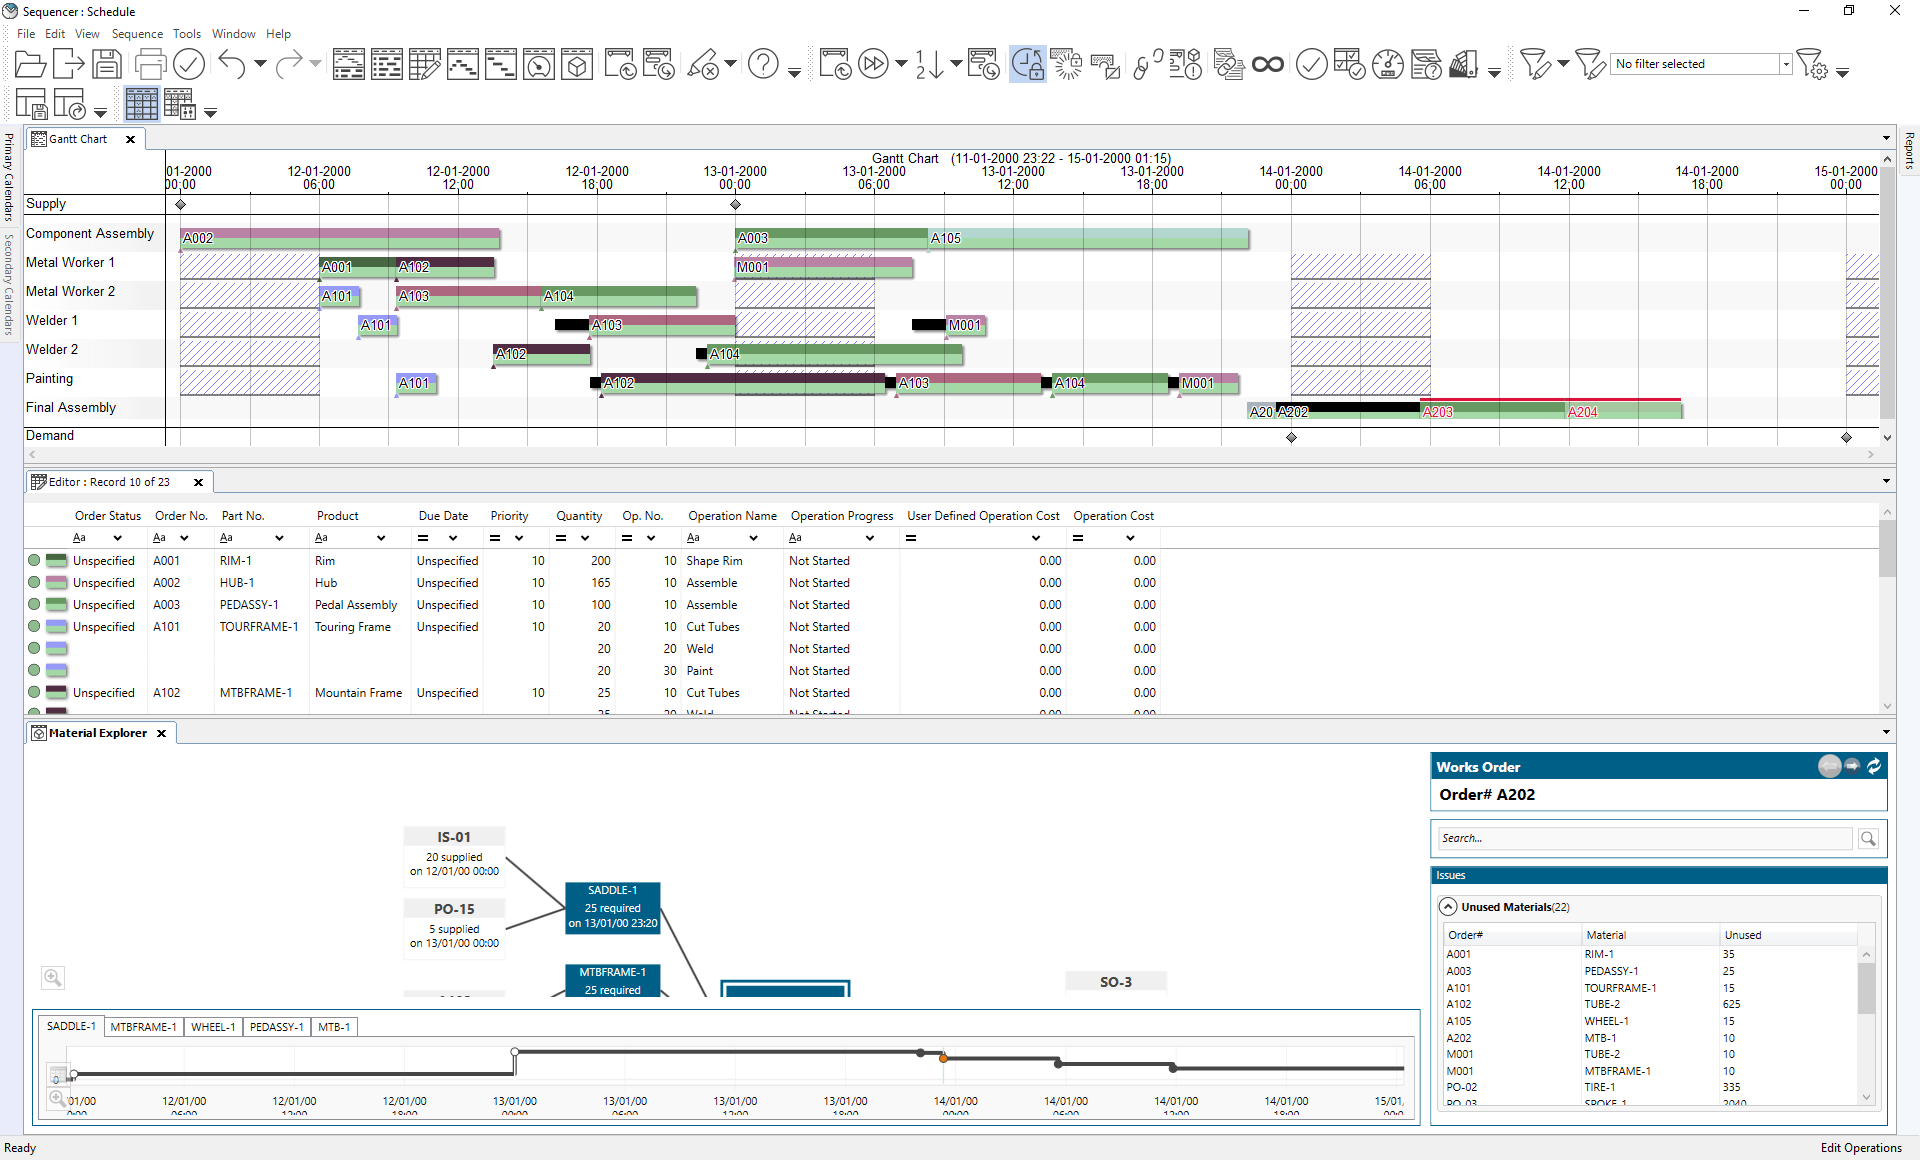 Overview with the Gantt chart, Editor and Material Explorer windows open